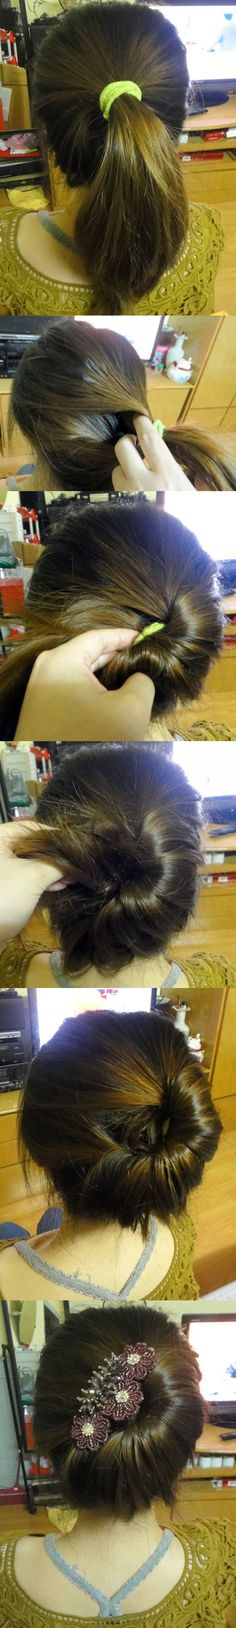 Peinados - Hairstyles - Make A Chignon For Your Hair Pretty Hairstyles, Girl Hairstyles, Easy Hairstyles, Celebrity Hairstyles, Wedding Hairstyles, Coiffure Hair, Chignon Hairstyle, Cute Ponytails, Corte Y Color